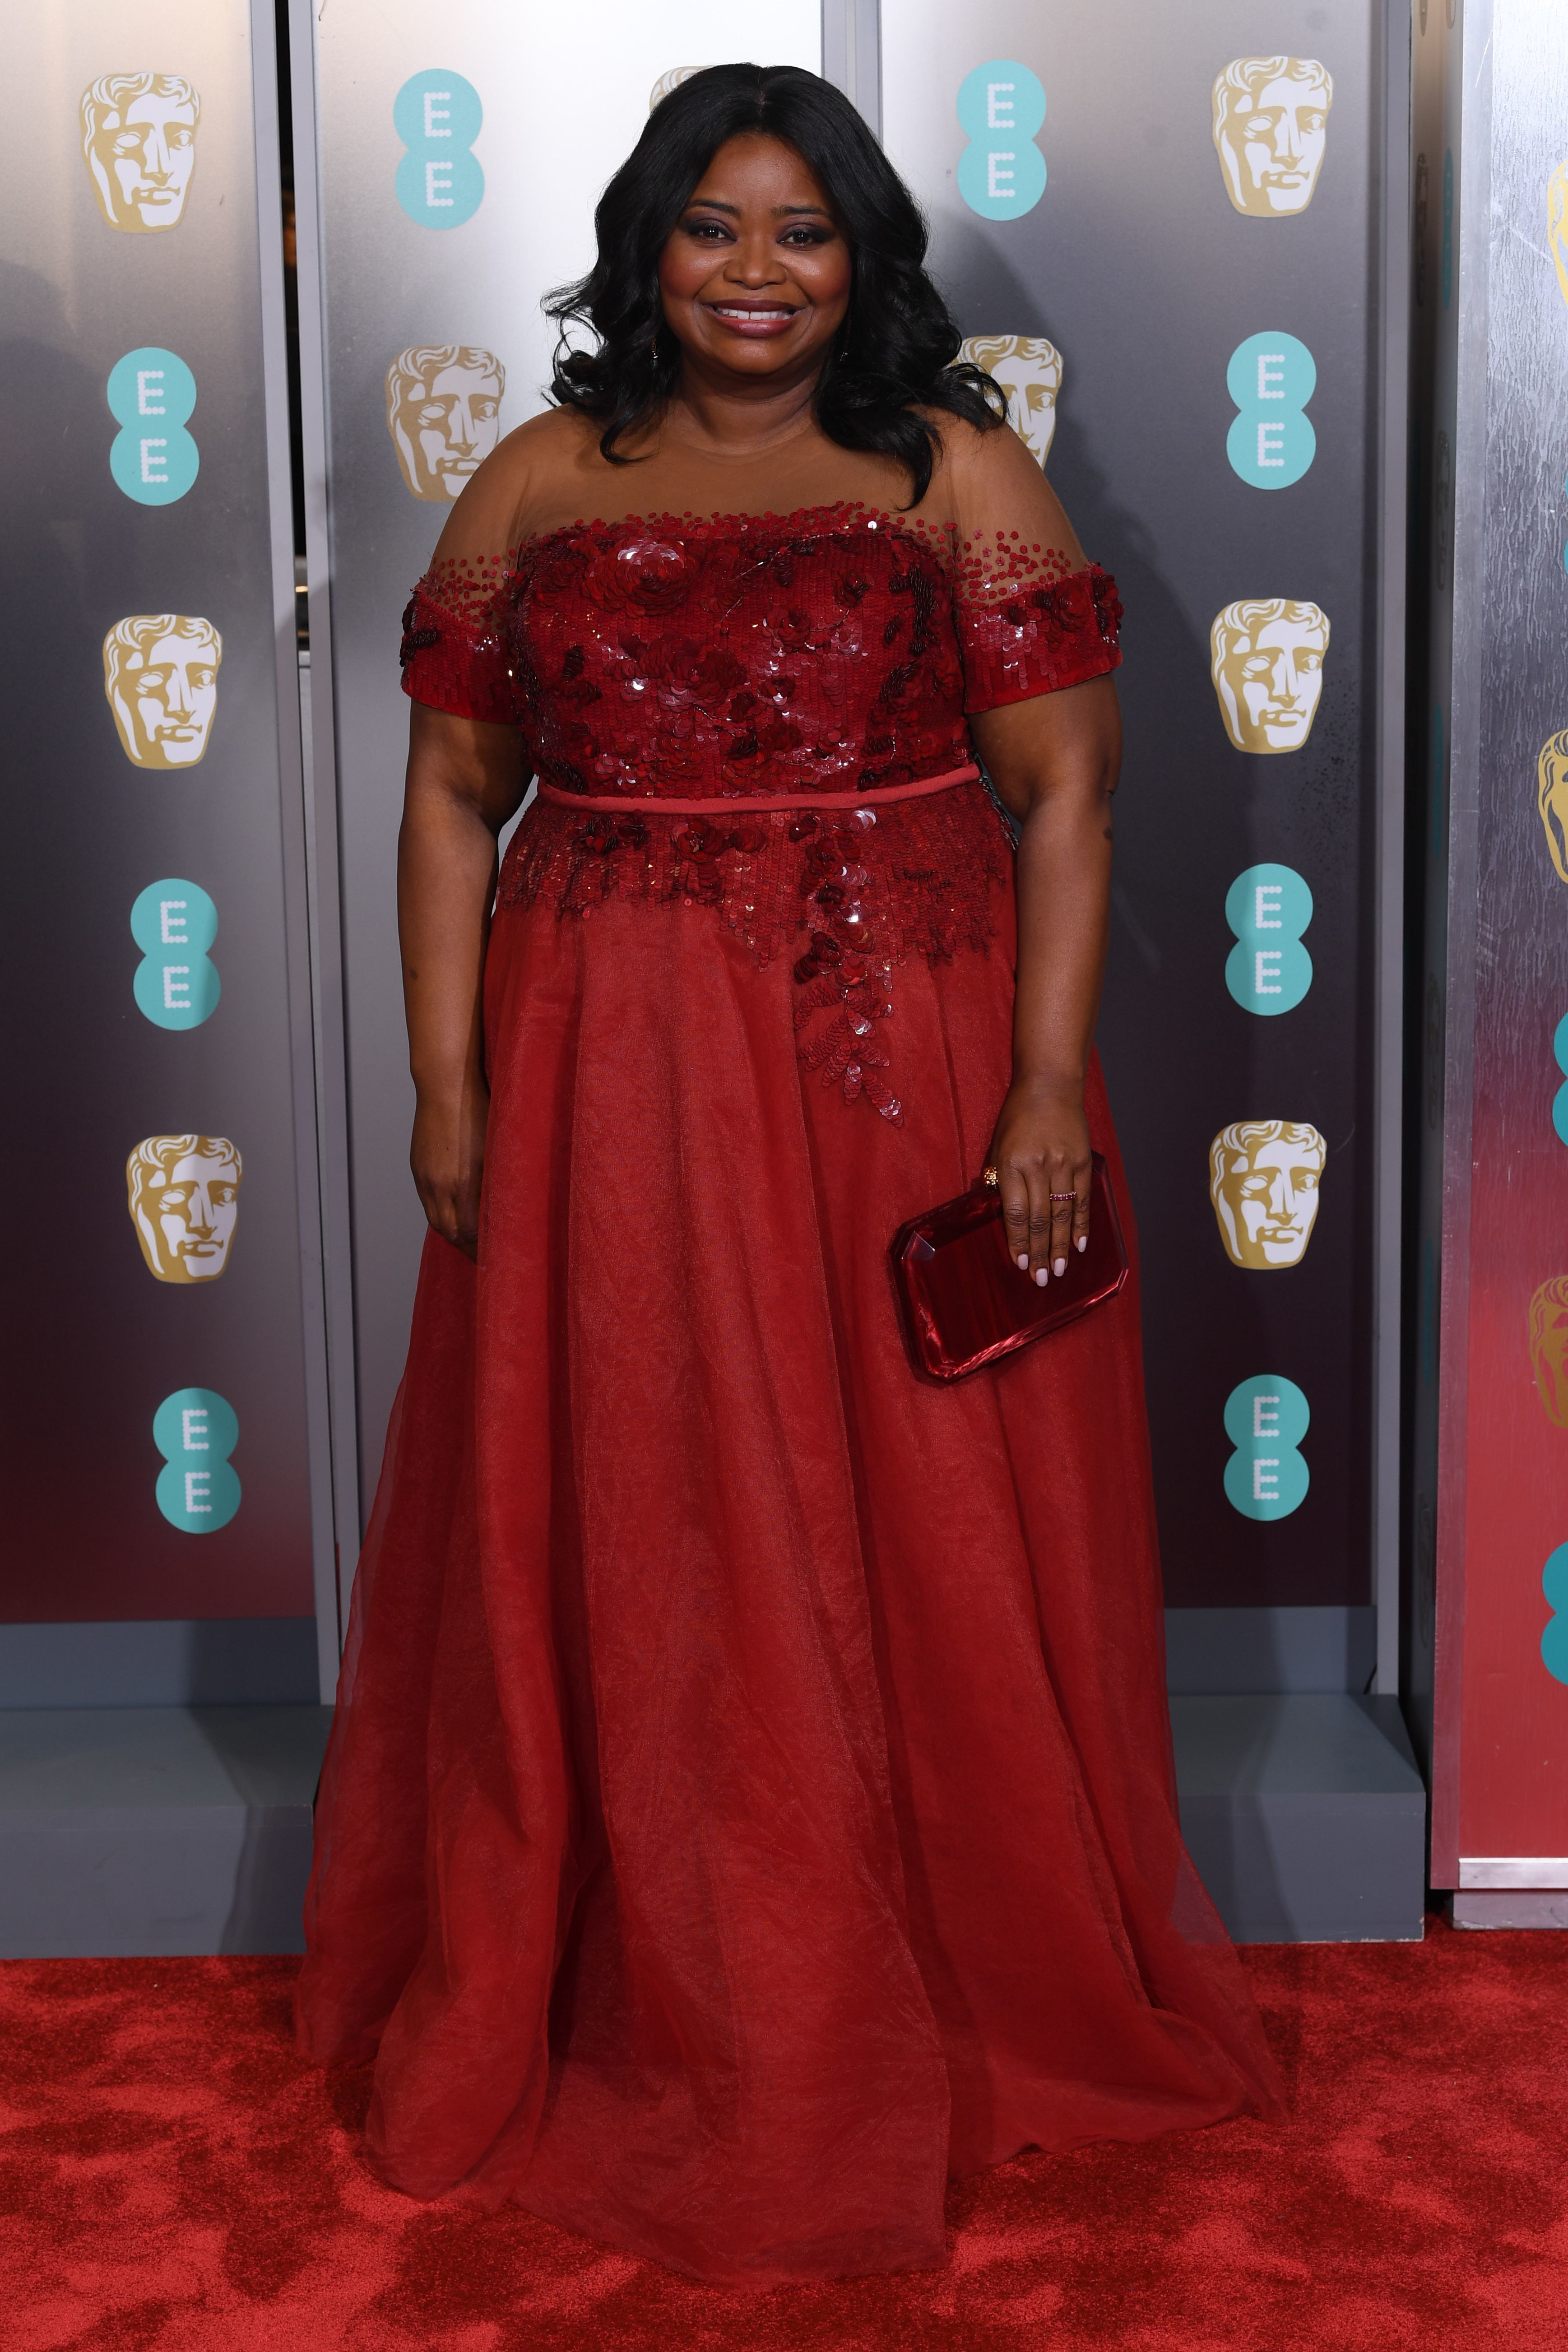 Octavia Spencer attends the 72nd British Academy Film Awards in London on Feb. 10, 2019.